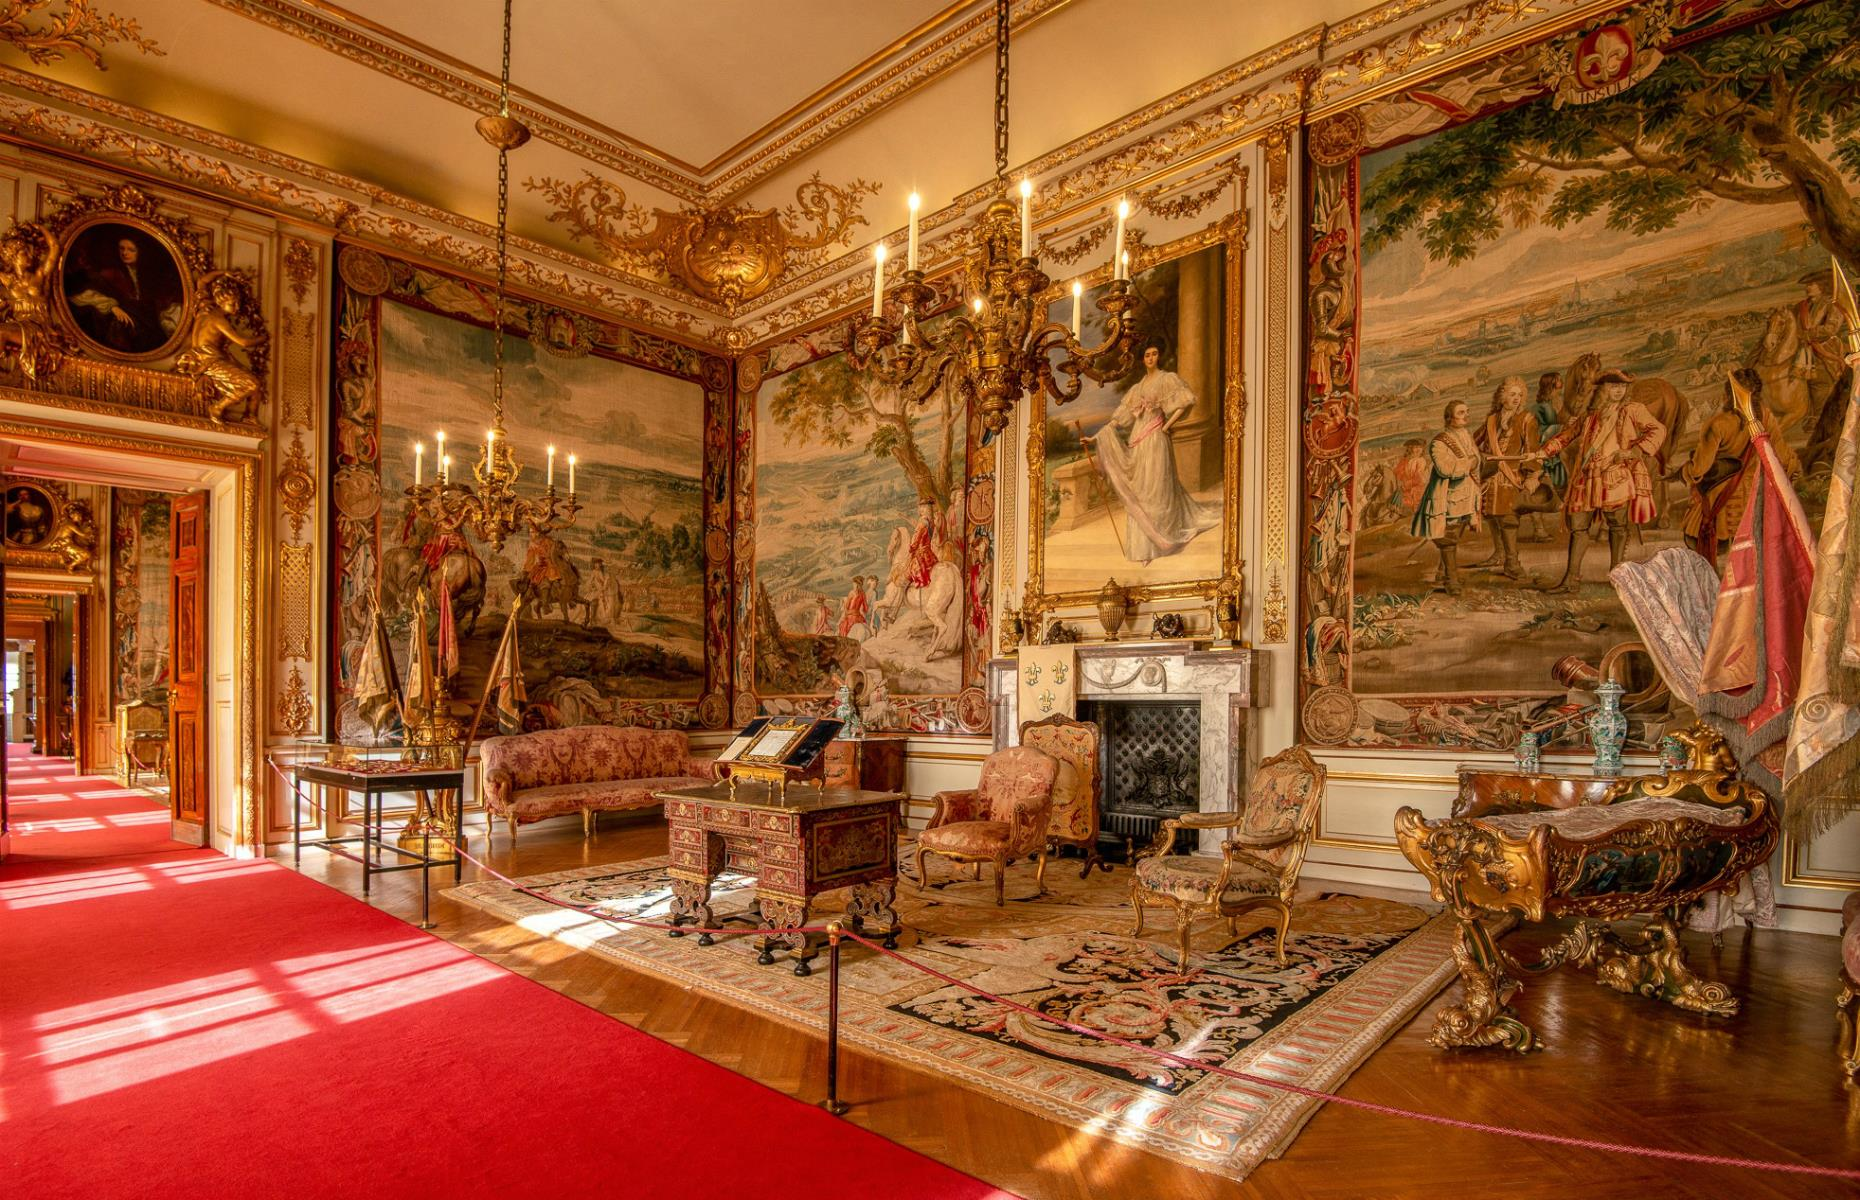 Slide 27 of 53: The palace's string of staterooms are rich in texture and detail, with tapestries and priceless portraits hanging on the walls, plush red carpets and gilded cornices. Pretty much everything is gilded, in fact, from the golden cherubs watching over the door to the golden chandeliers.